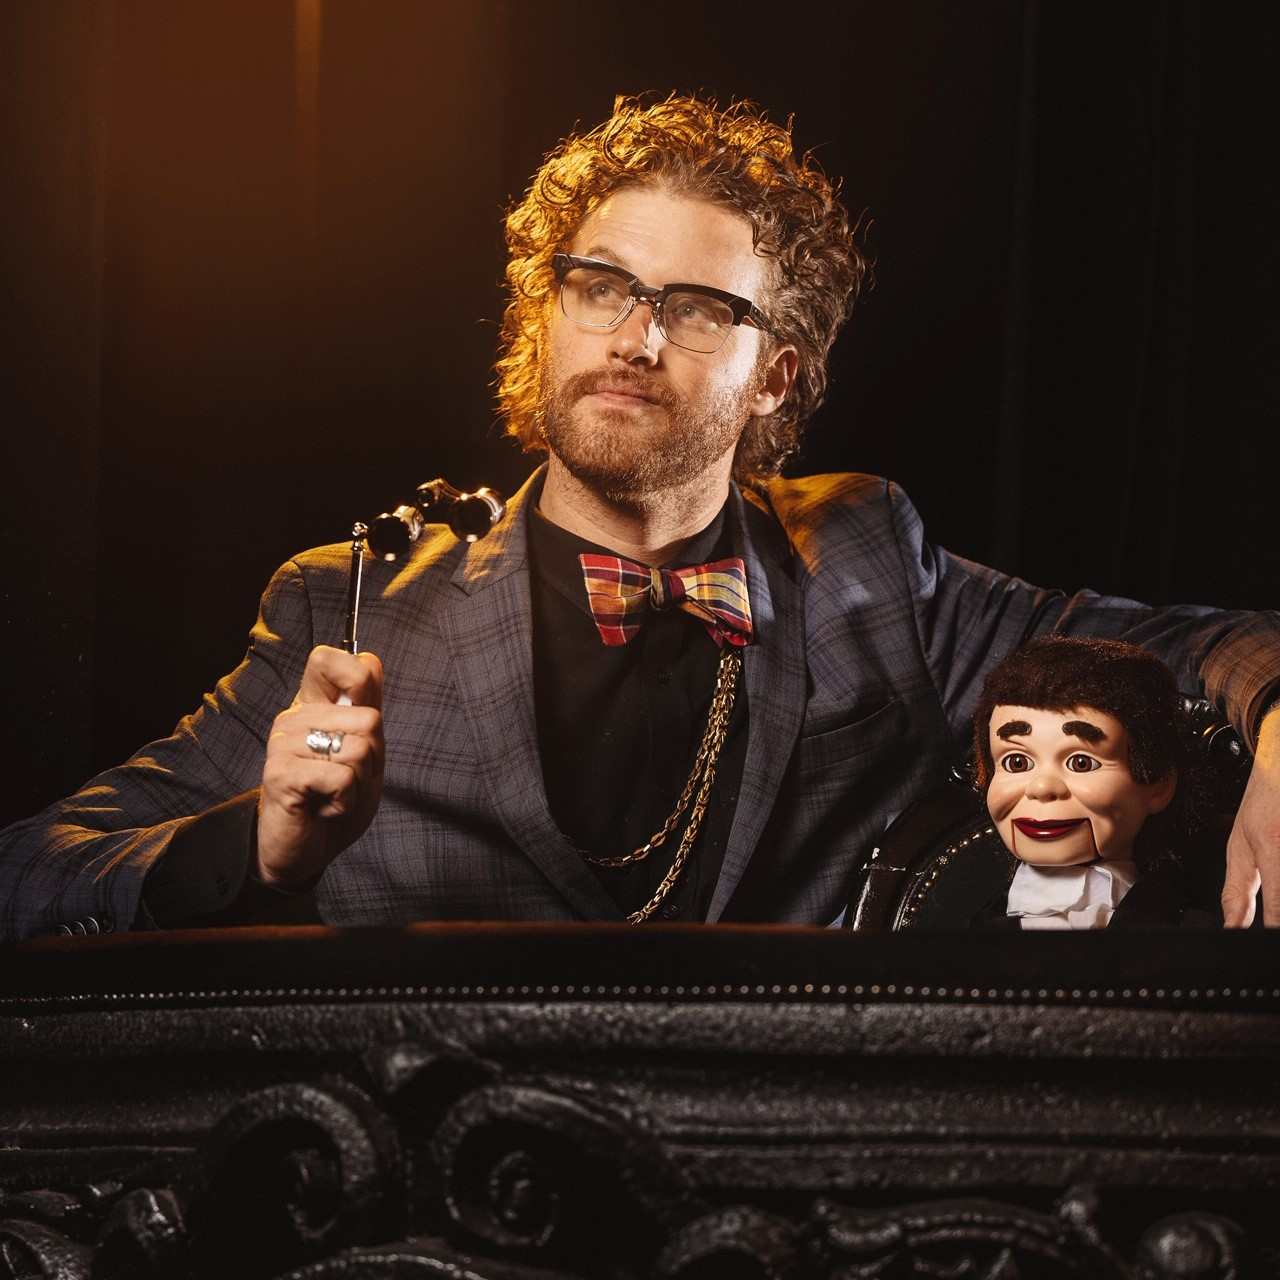 T. J. Miller Thursday Night 10 PM Headliner on Feb 27, 22:00@Funny Stop Comedy Club - Buy tickets and Get information on Funny Stop funnystop.online